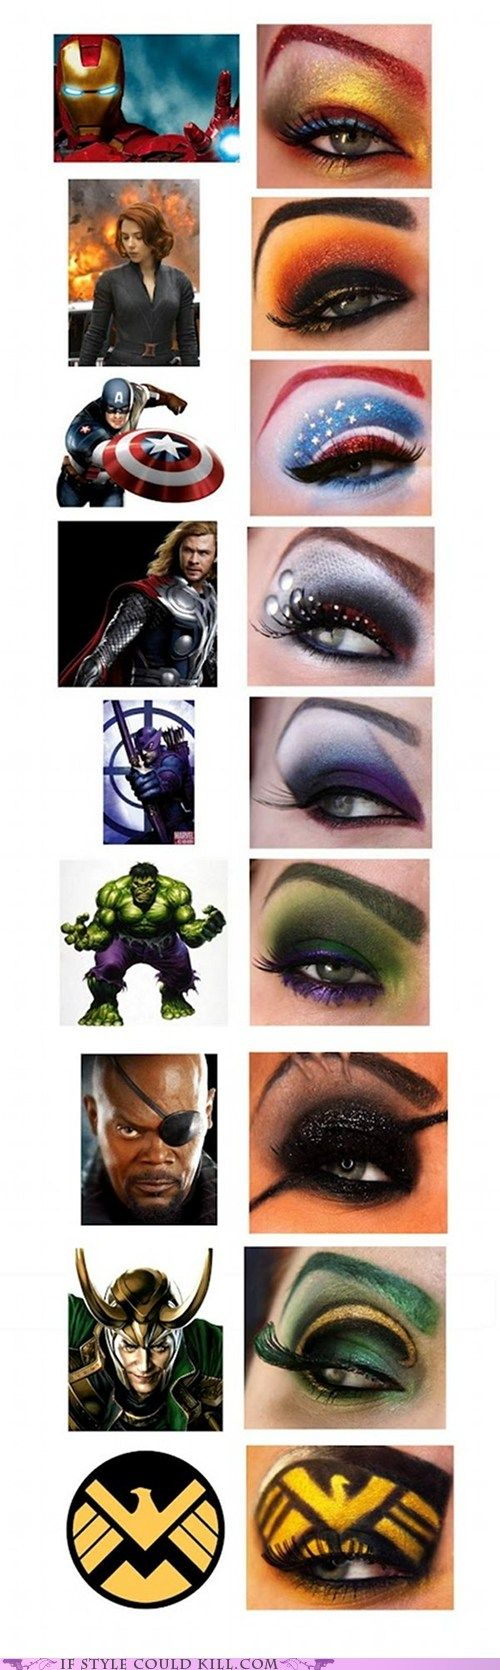 Different Make-up ideas for Halloween i love  marvel comics <3